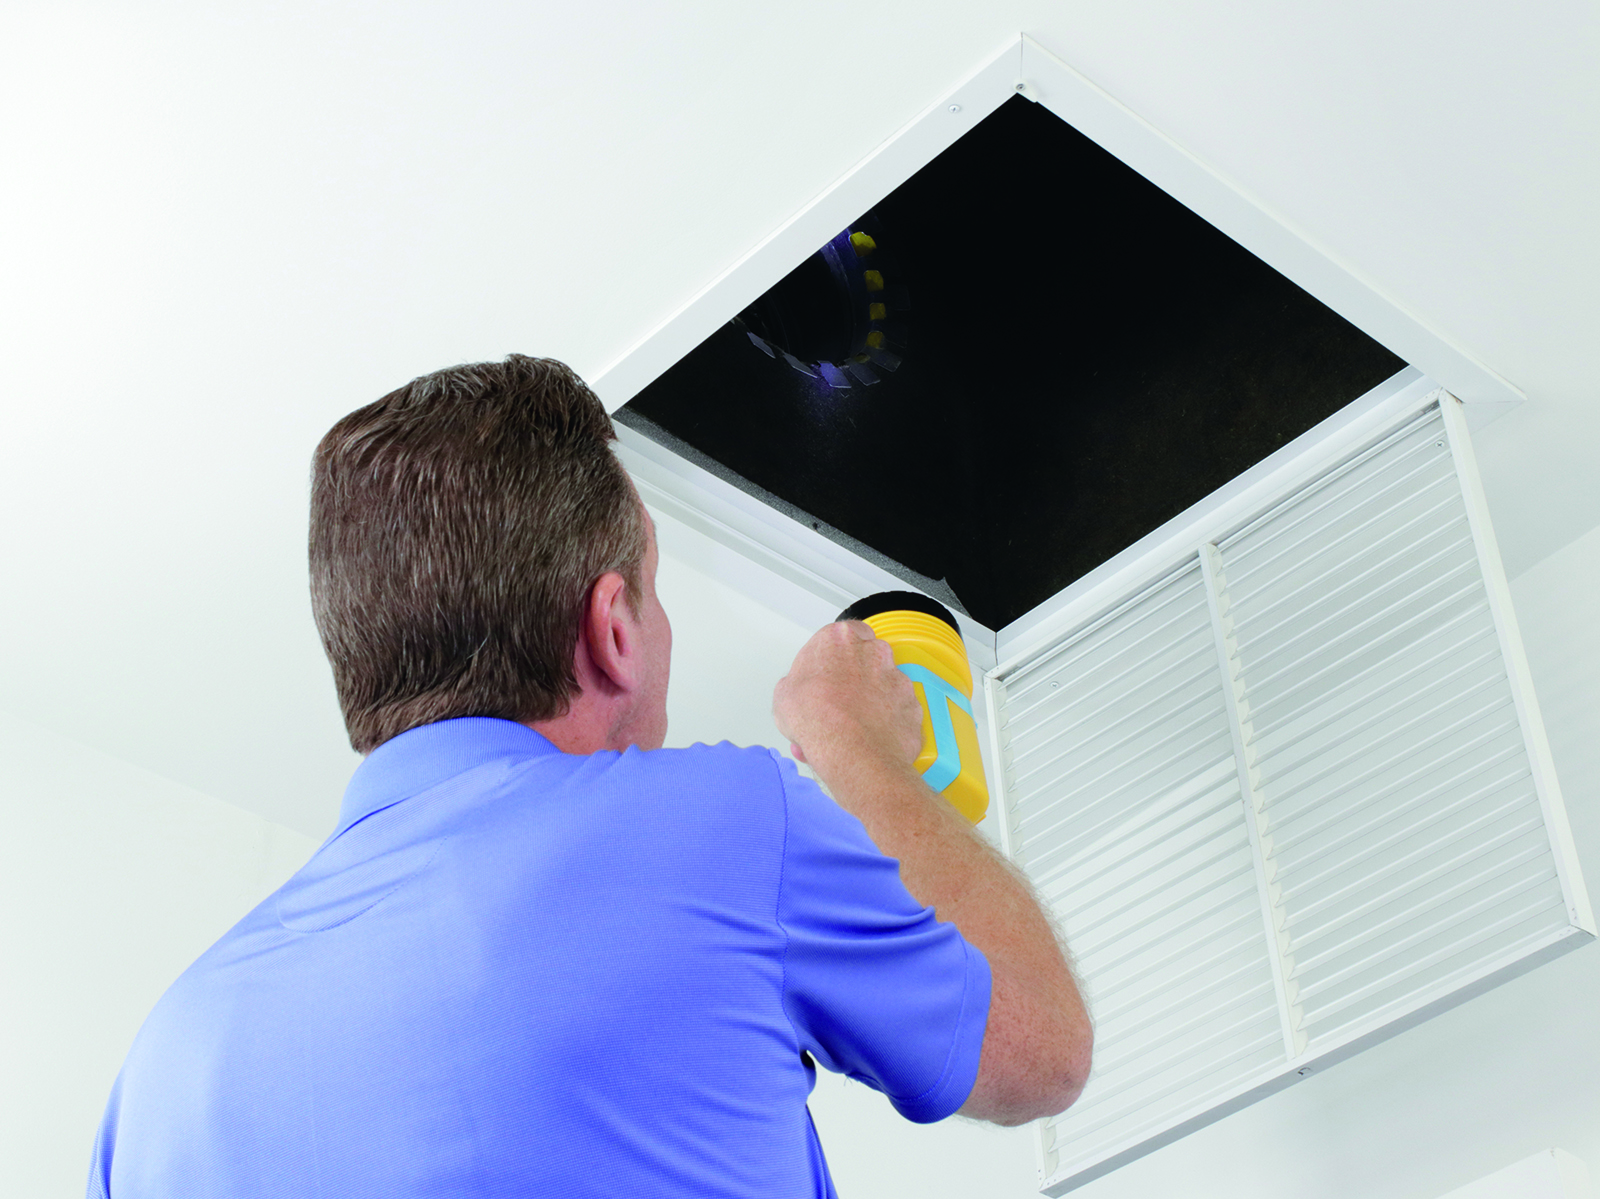 Nettoyage de la ventilation : les points d'attention